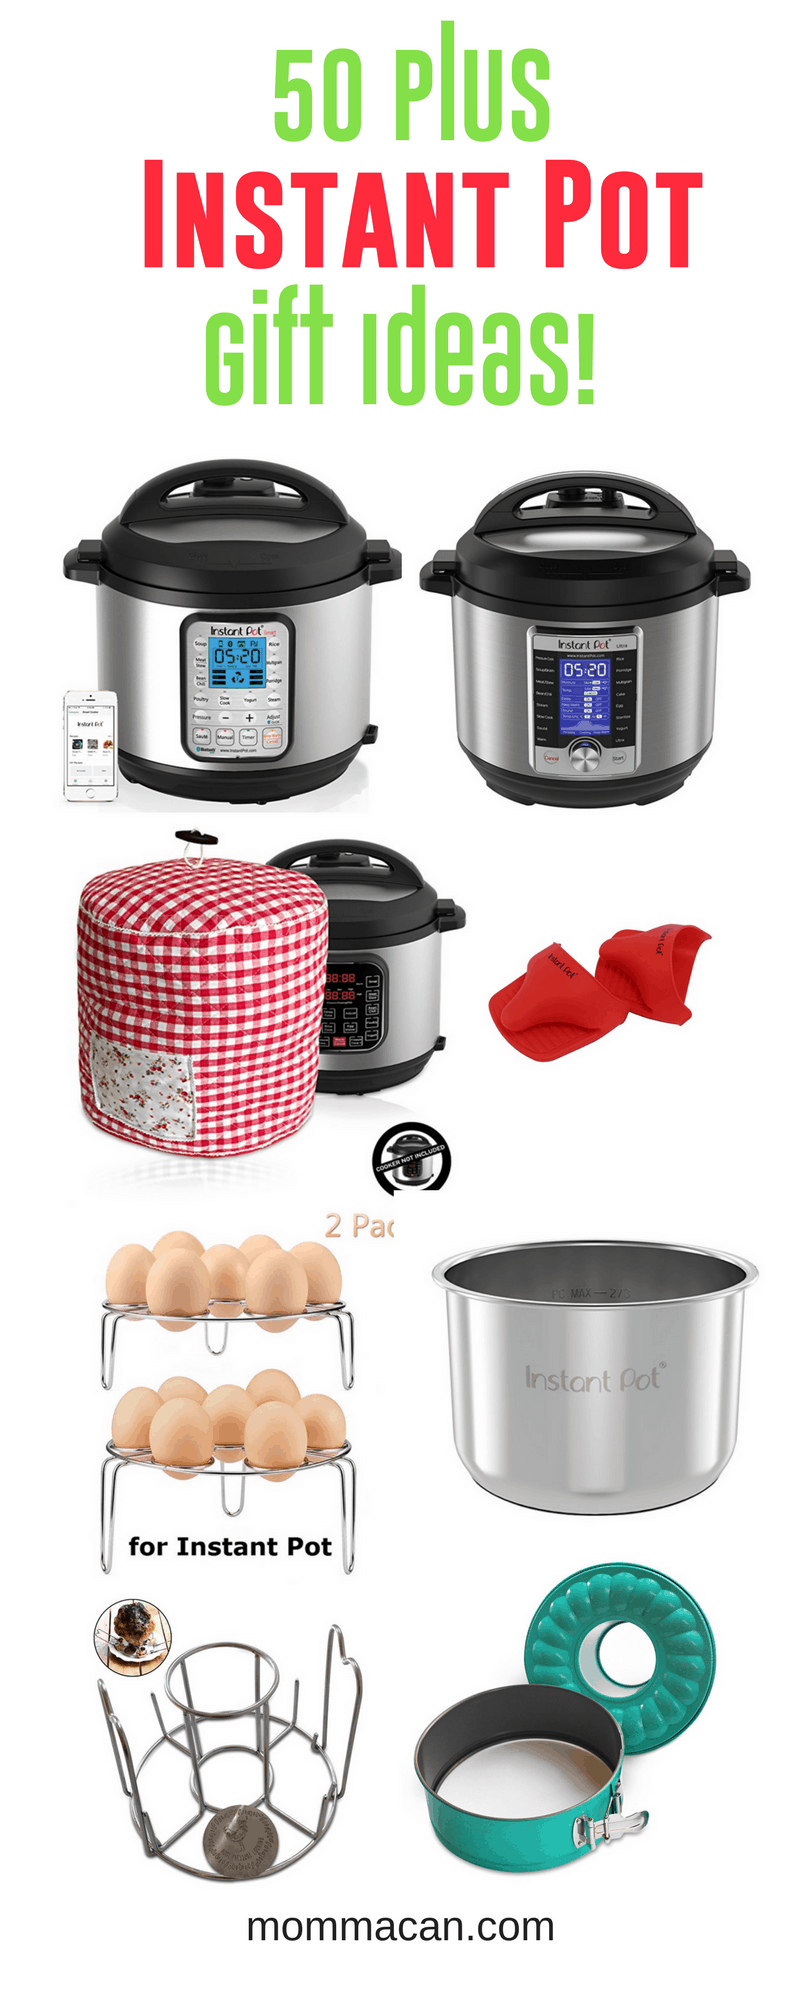 50 Instant Pot Gift Ideas And Accessories Momma Can